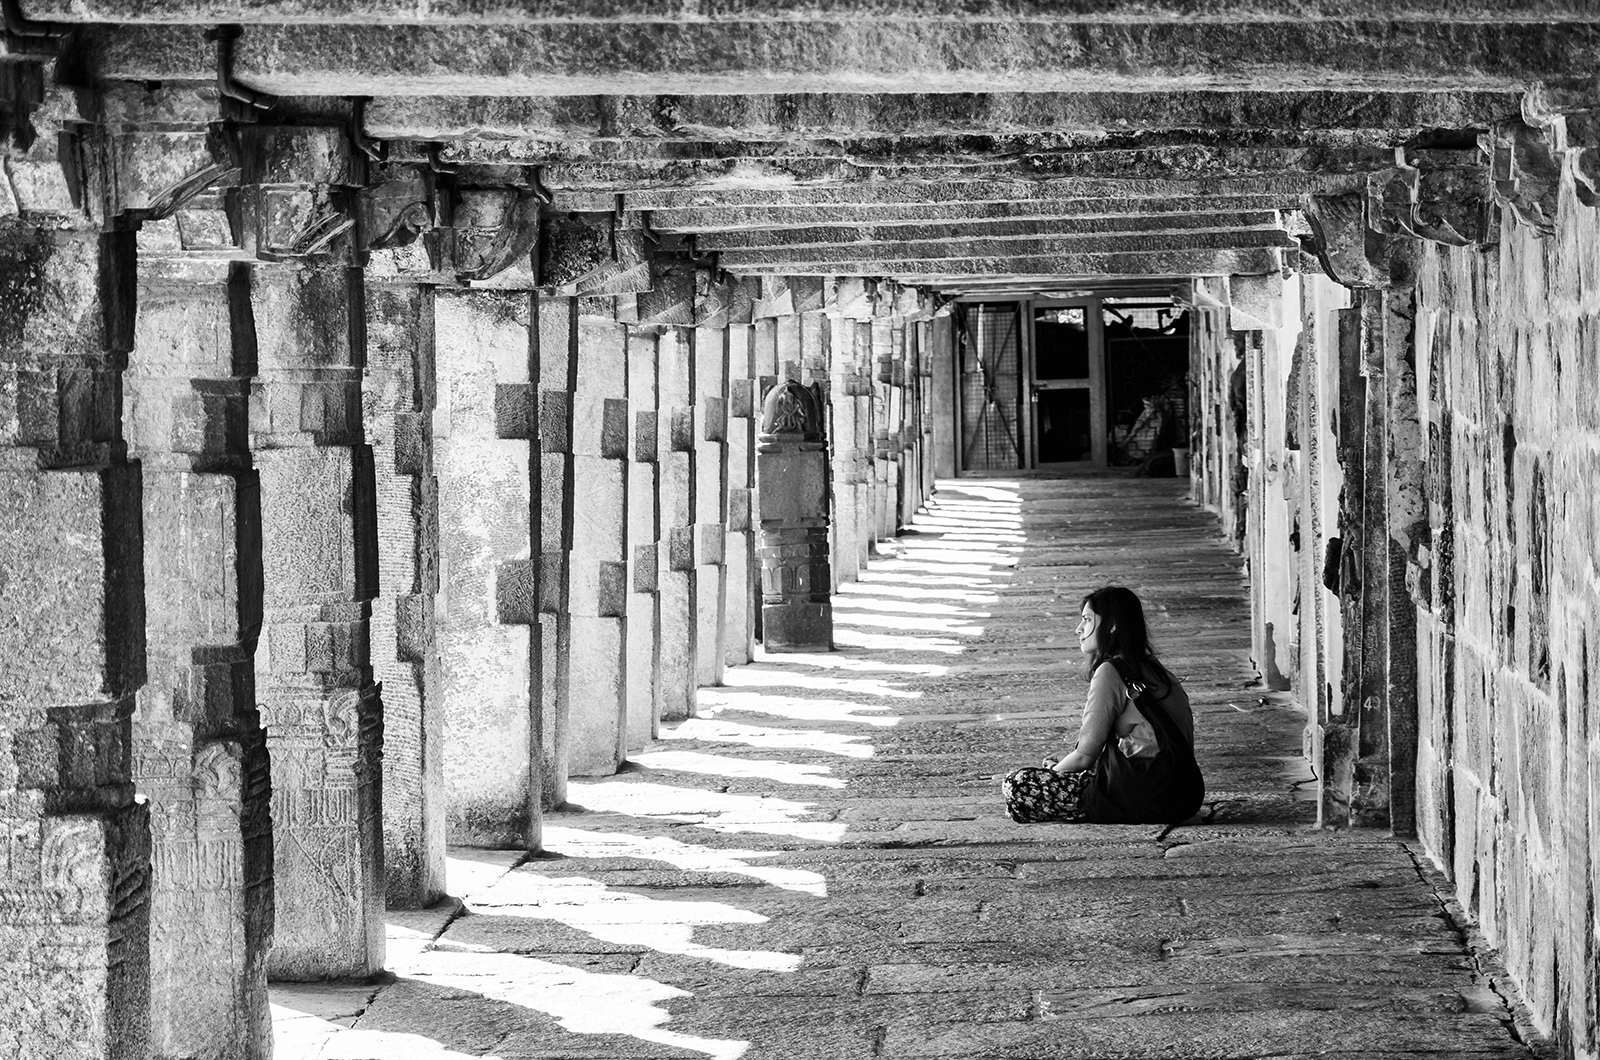 Black and white photo of woman sitting in temple in India